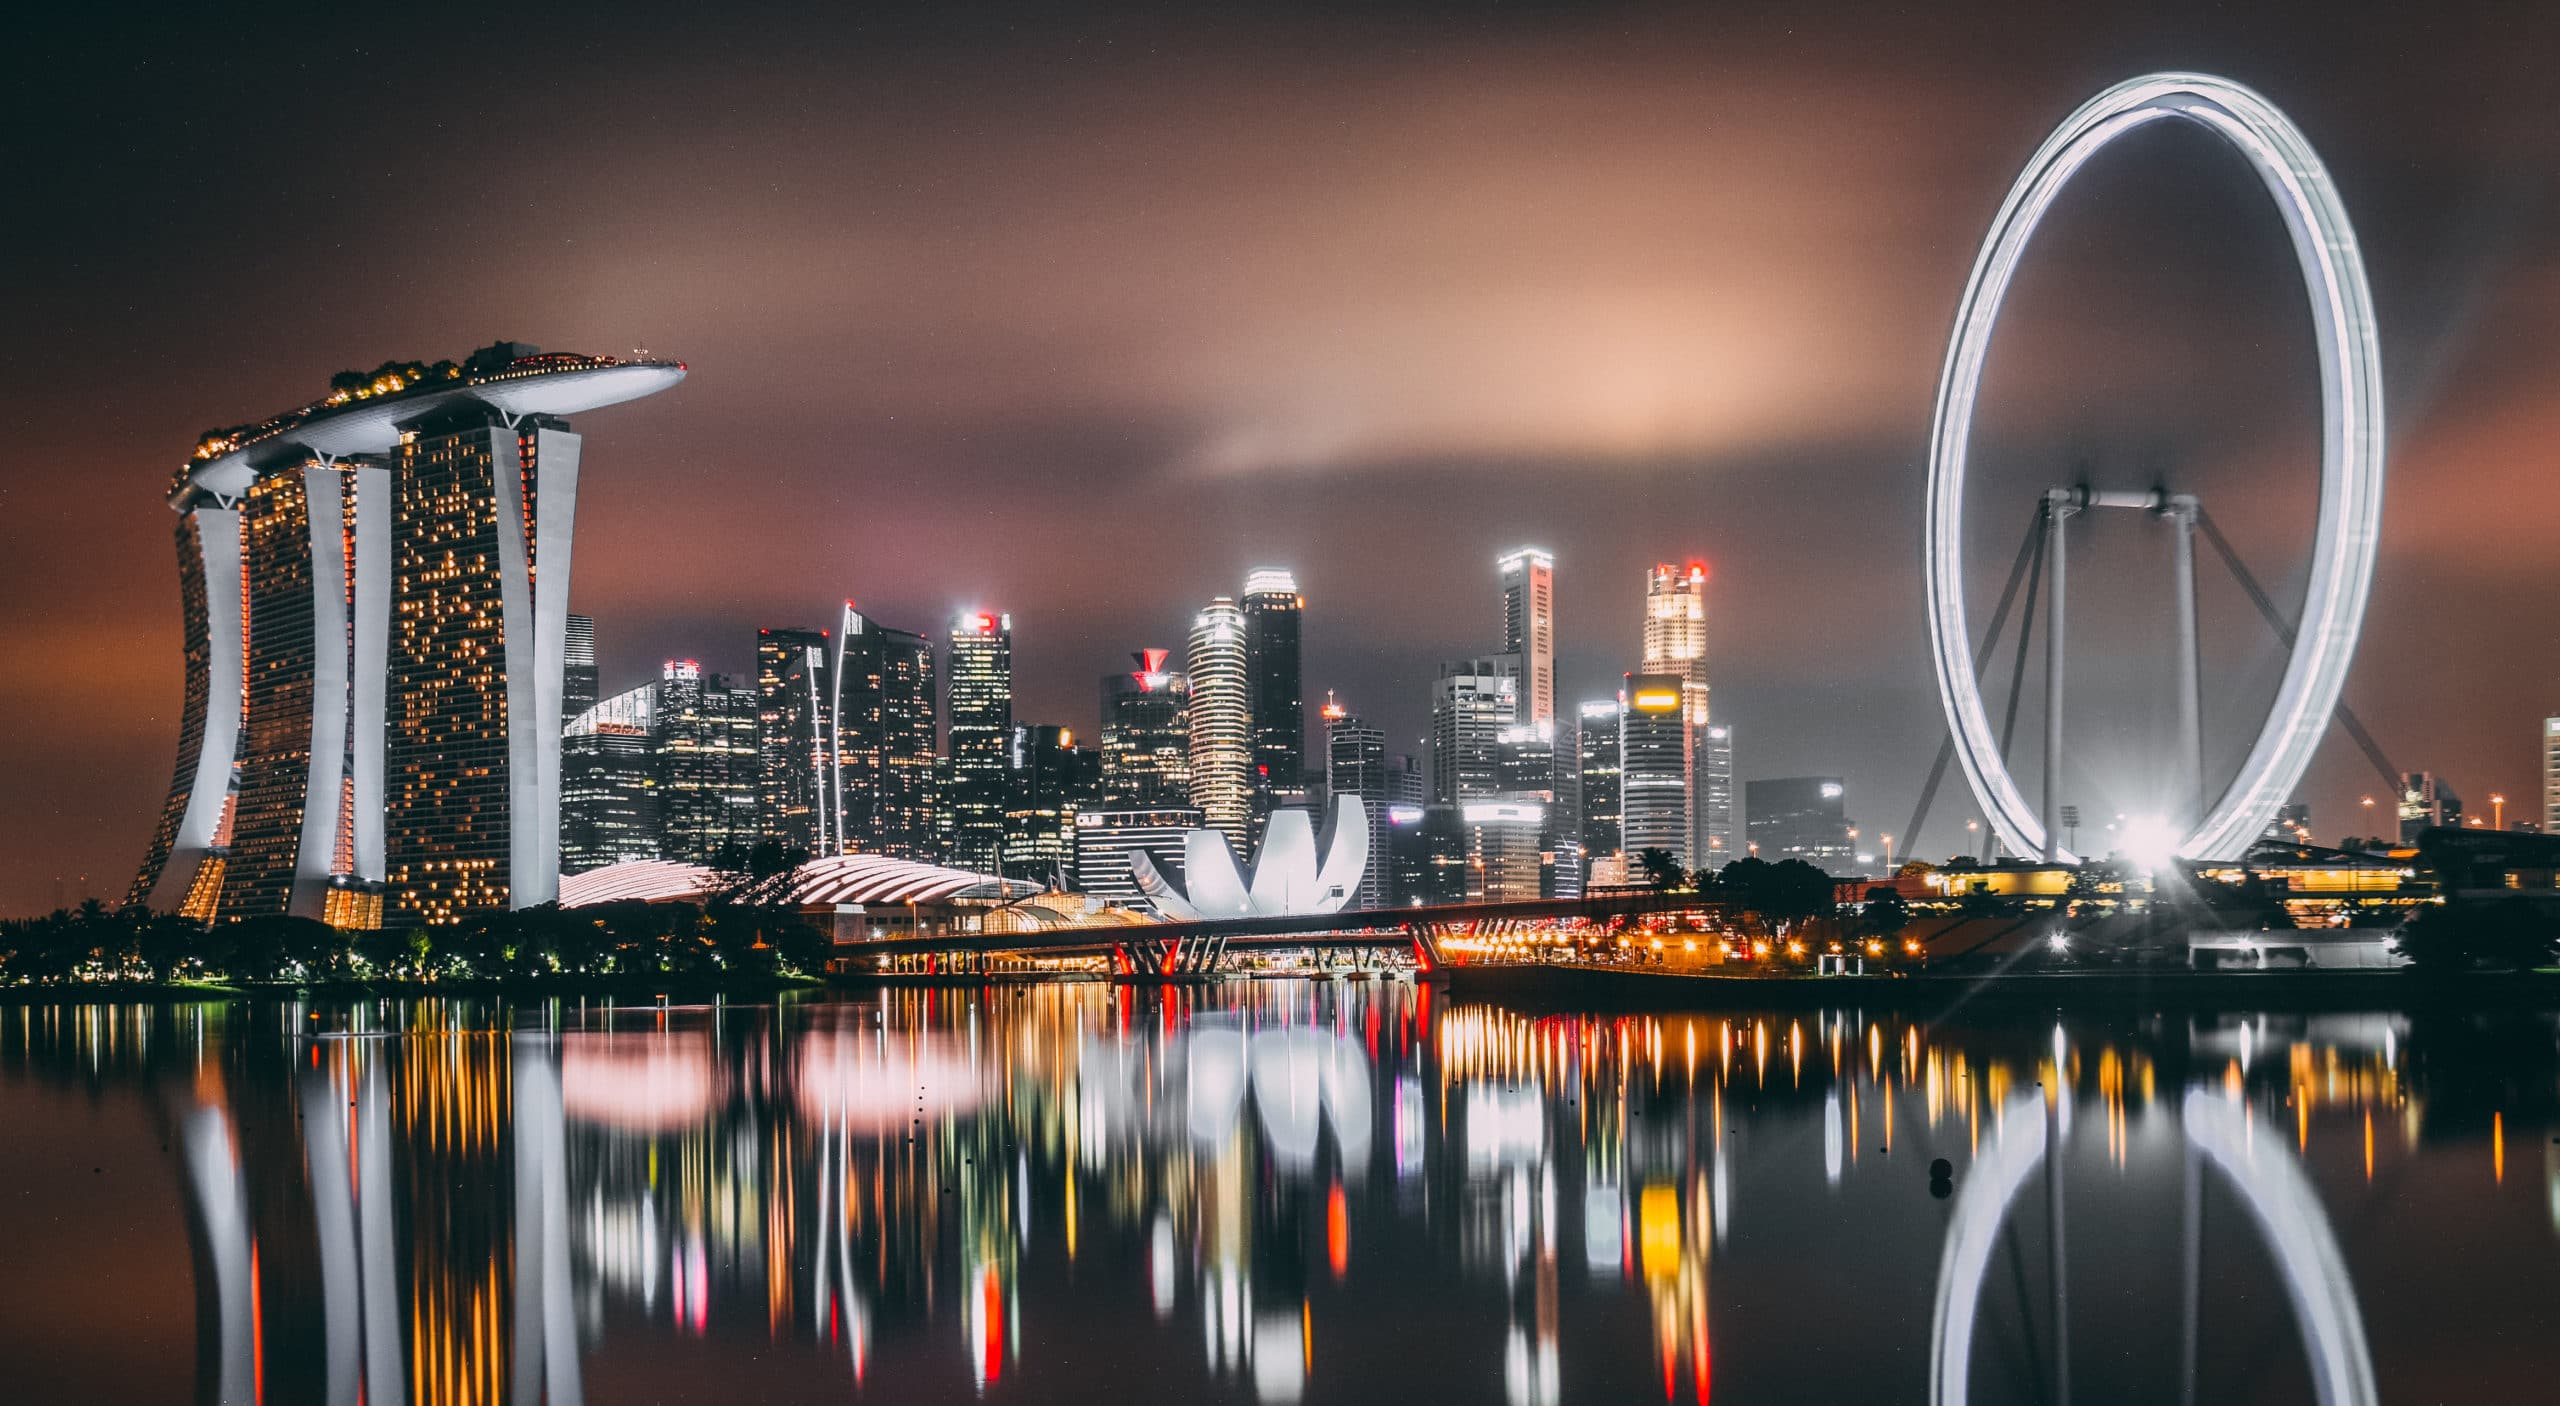 Night-time view of Marina Bay Promenade in Singapore. Large ferris wheel and towers glowing white with reflection in the bay.